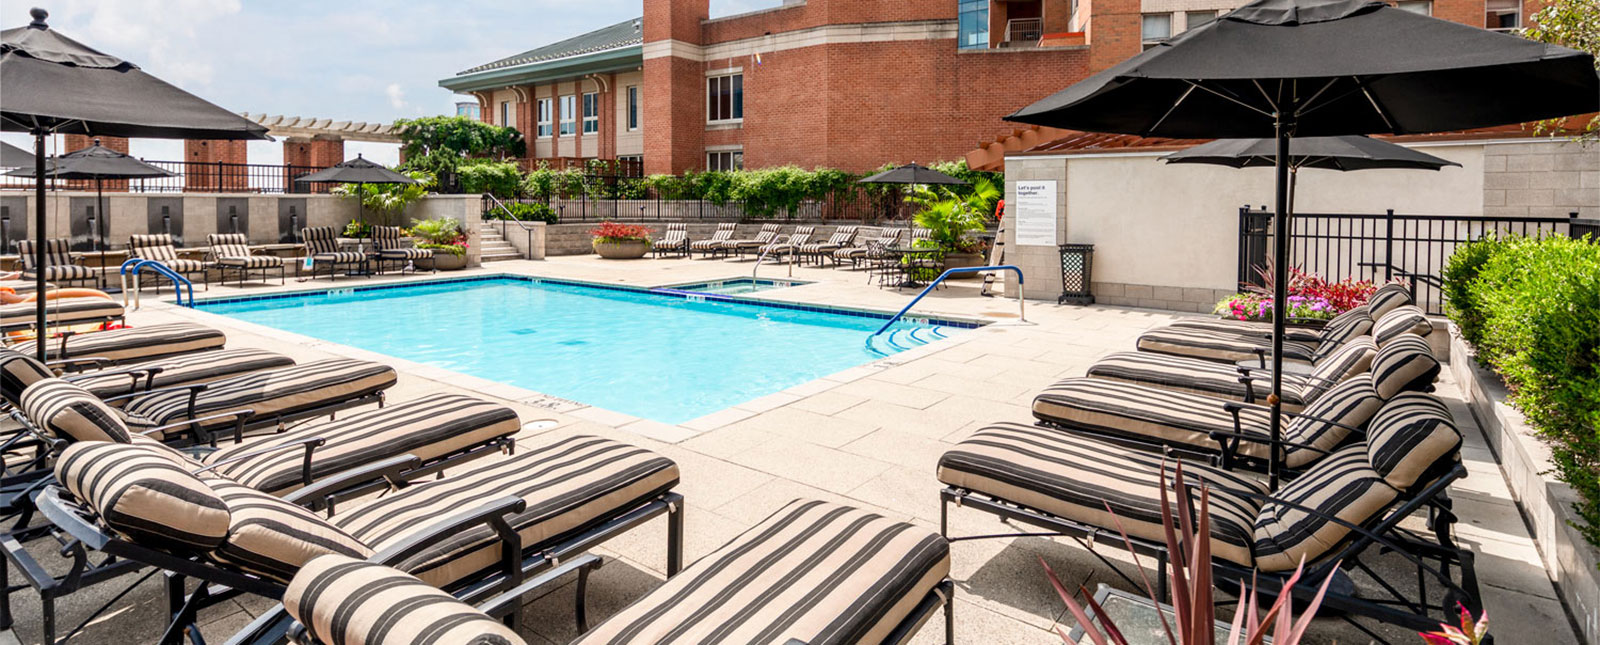 Pool area at Spinnaker Bay Serviced Apartments